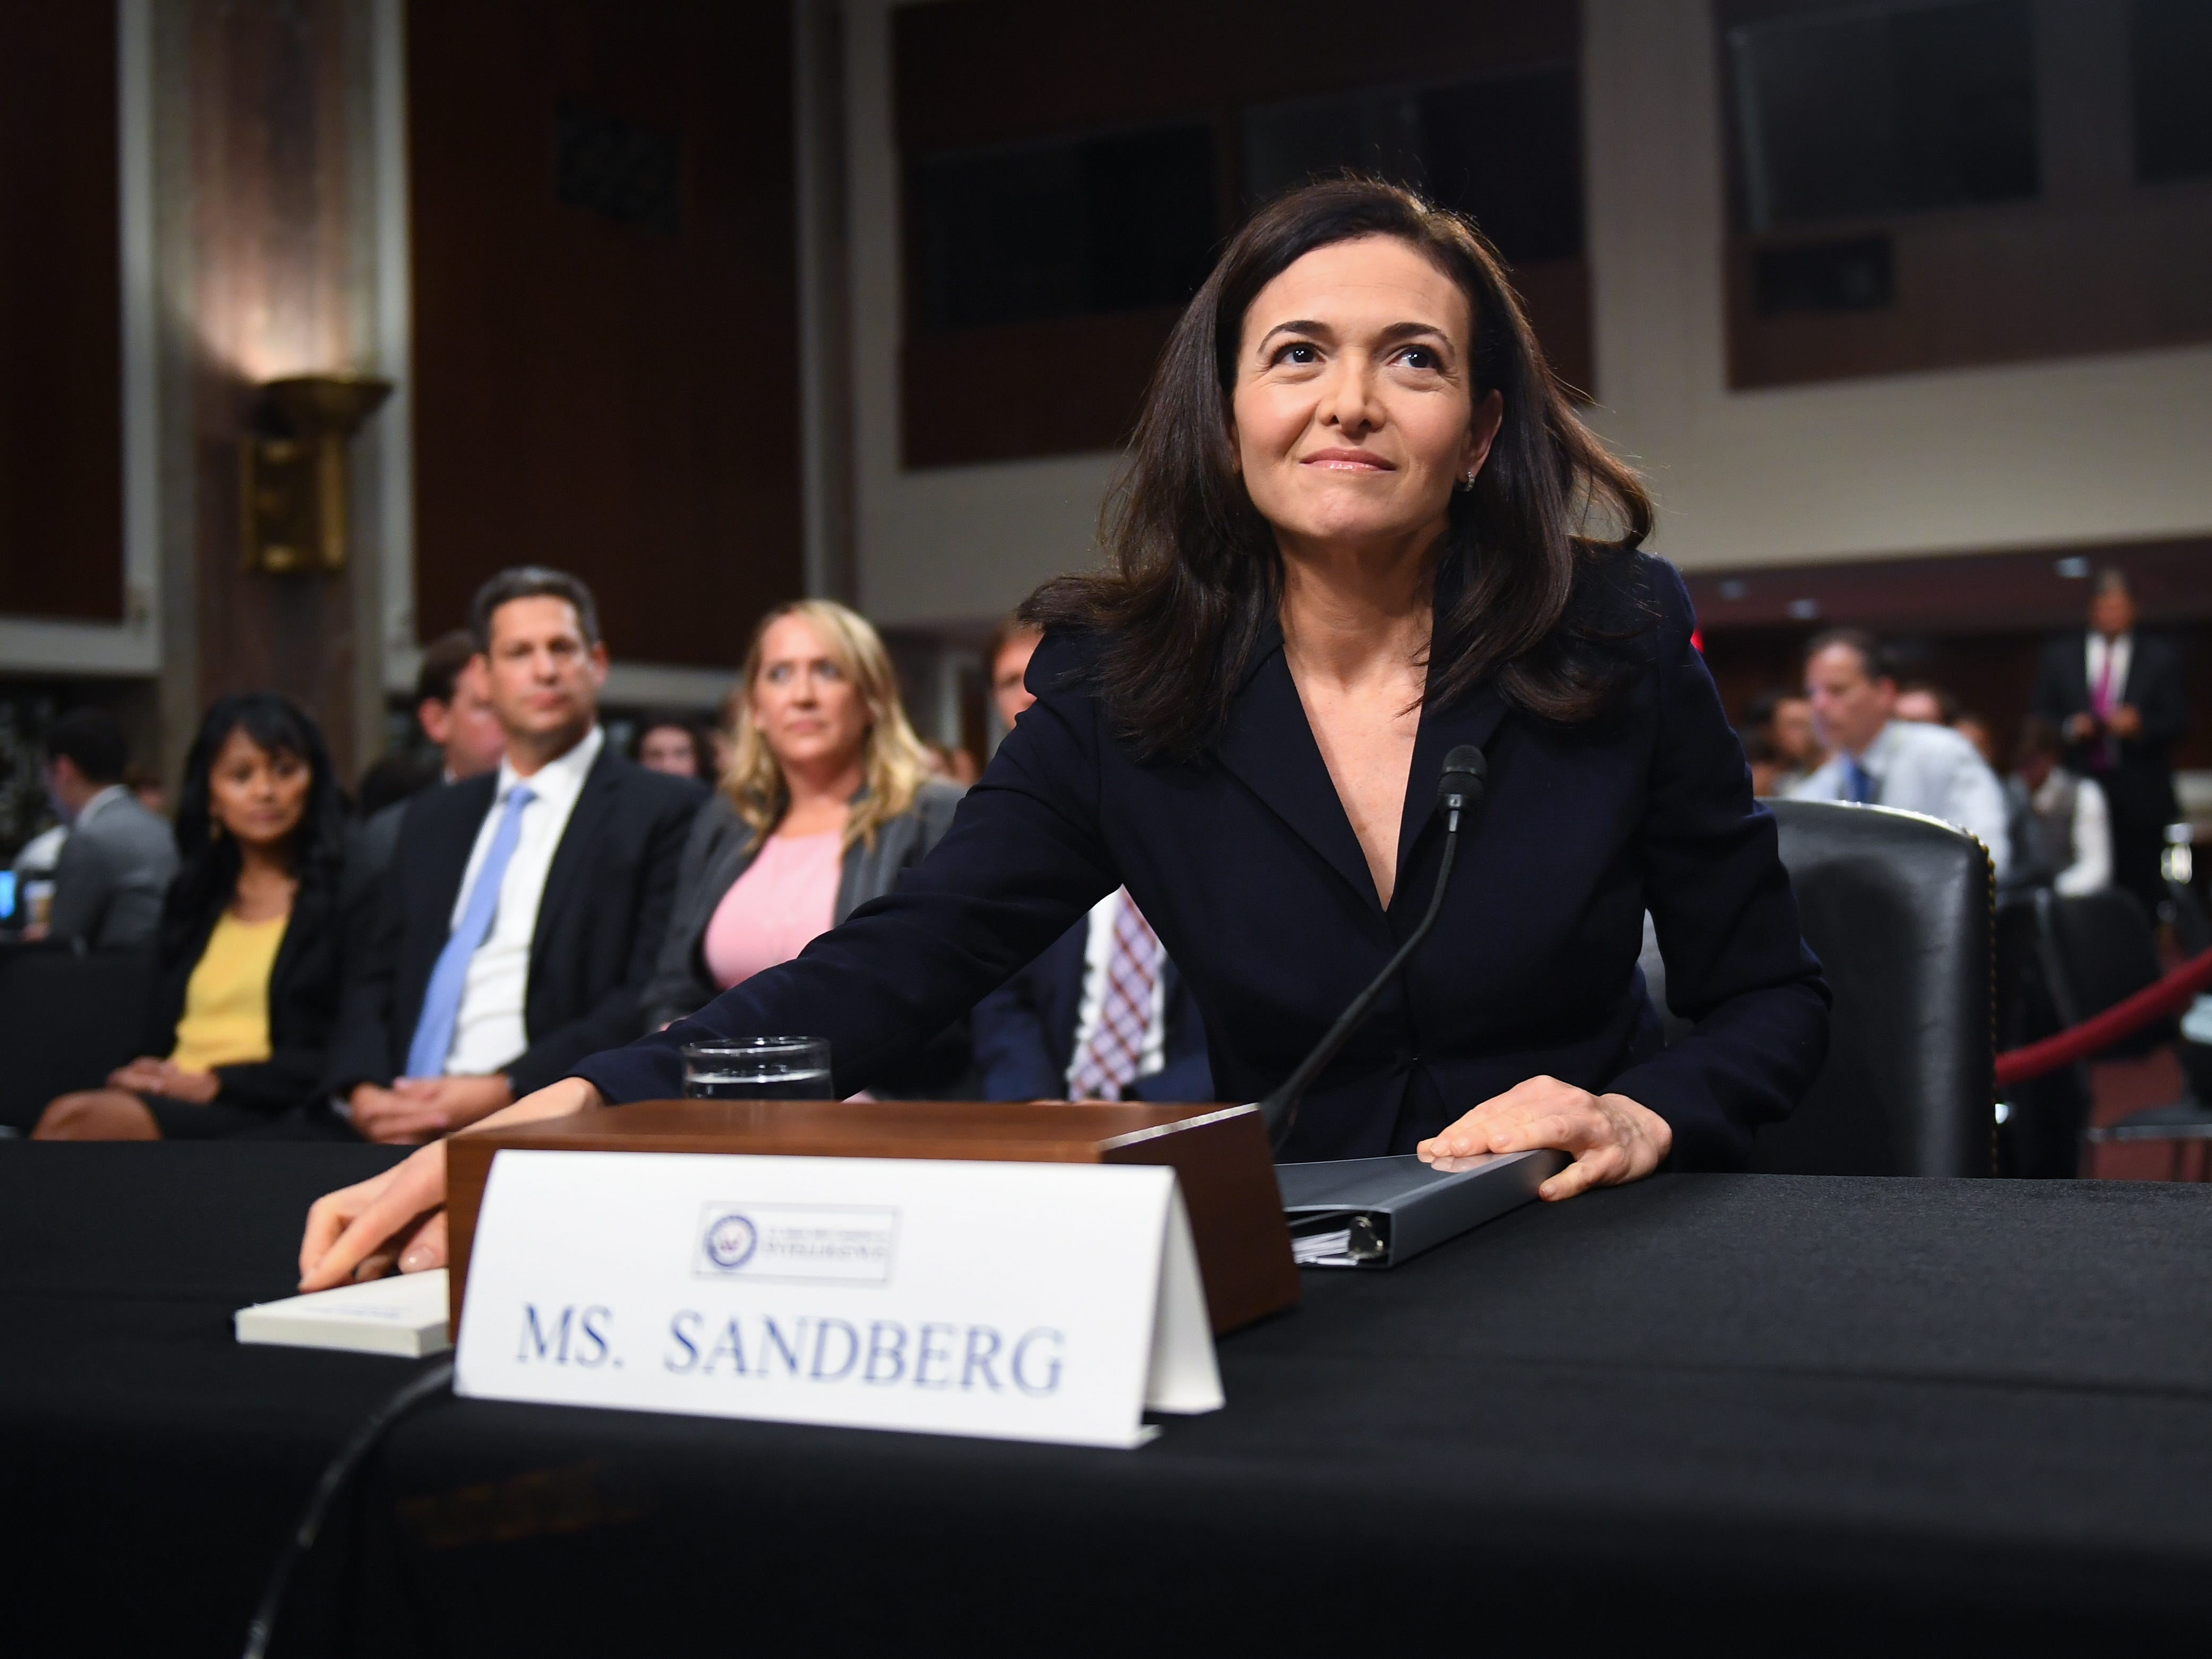 9/5/18 9:32:22 AM -- Washington, DC, U.S.A  -- Sheryl Sandberg, chief operating officer of Facebook Inc., arrives to testify before the Senate Select Committee on Intelligence during a hearing on Foreign Influence Operations' Use of Social Media Platforms on Sept. 5, 2018 in Washington.  --    Photo by Jack Gruber, USA TODAY Staff ORG XMIT:  JG 137441 Social Media Hea 9/5/ (Via OlyDrop)